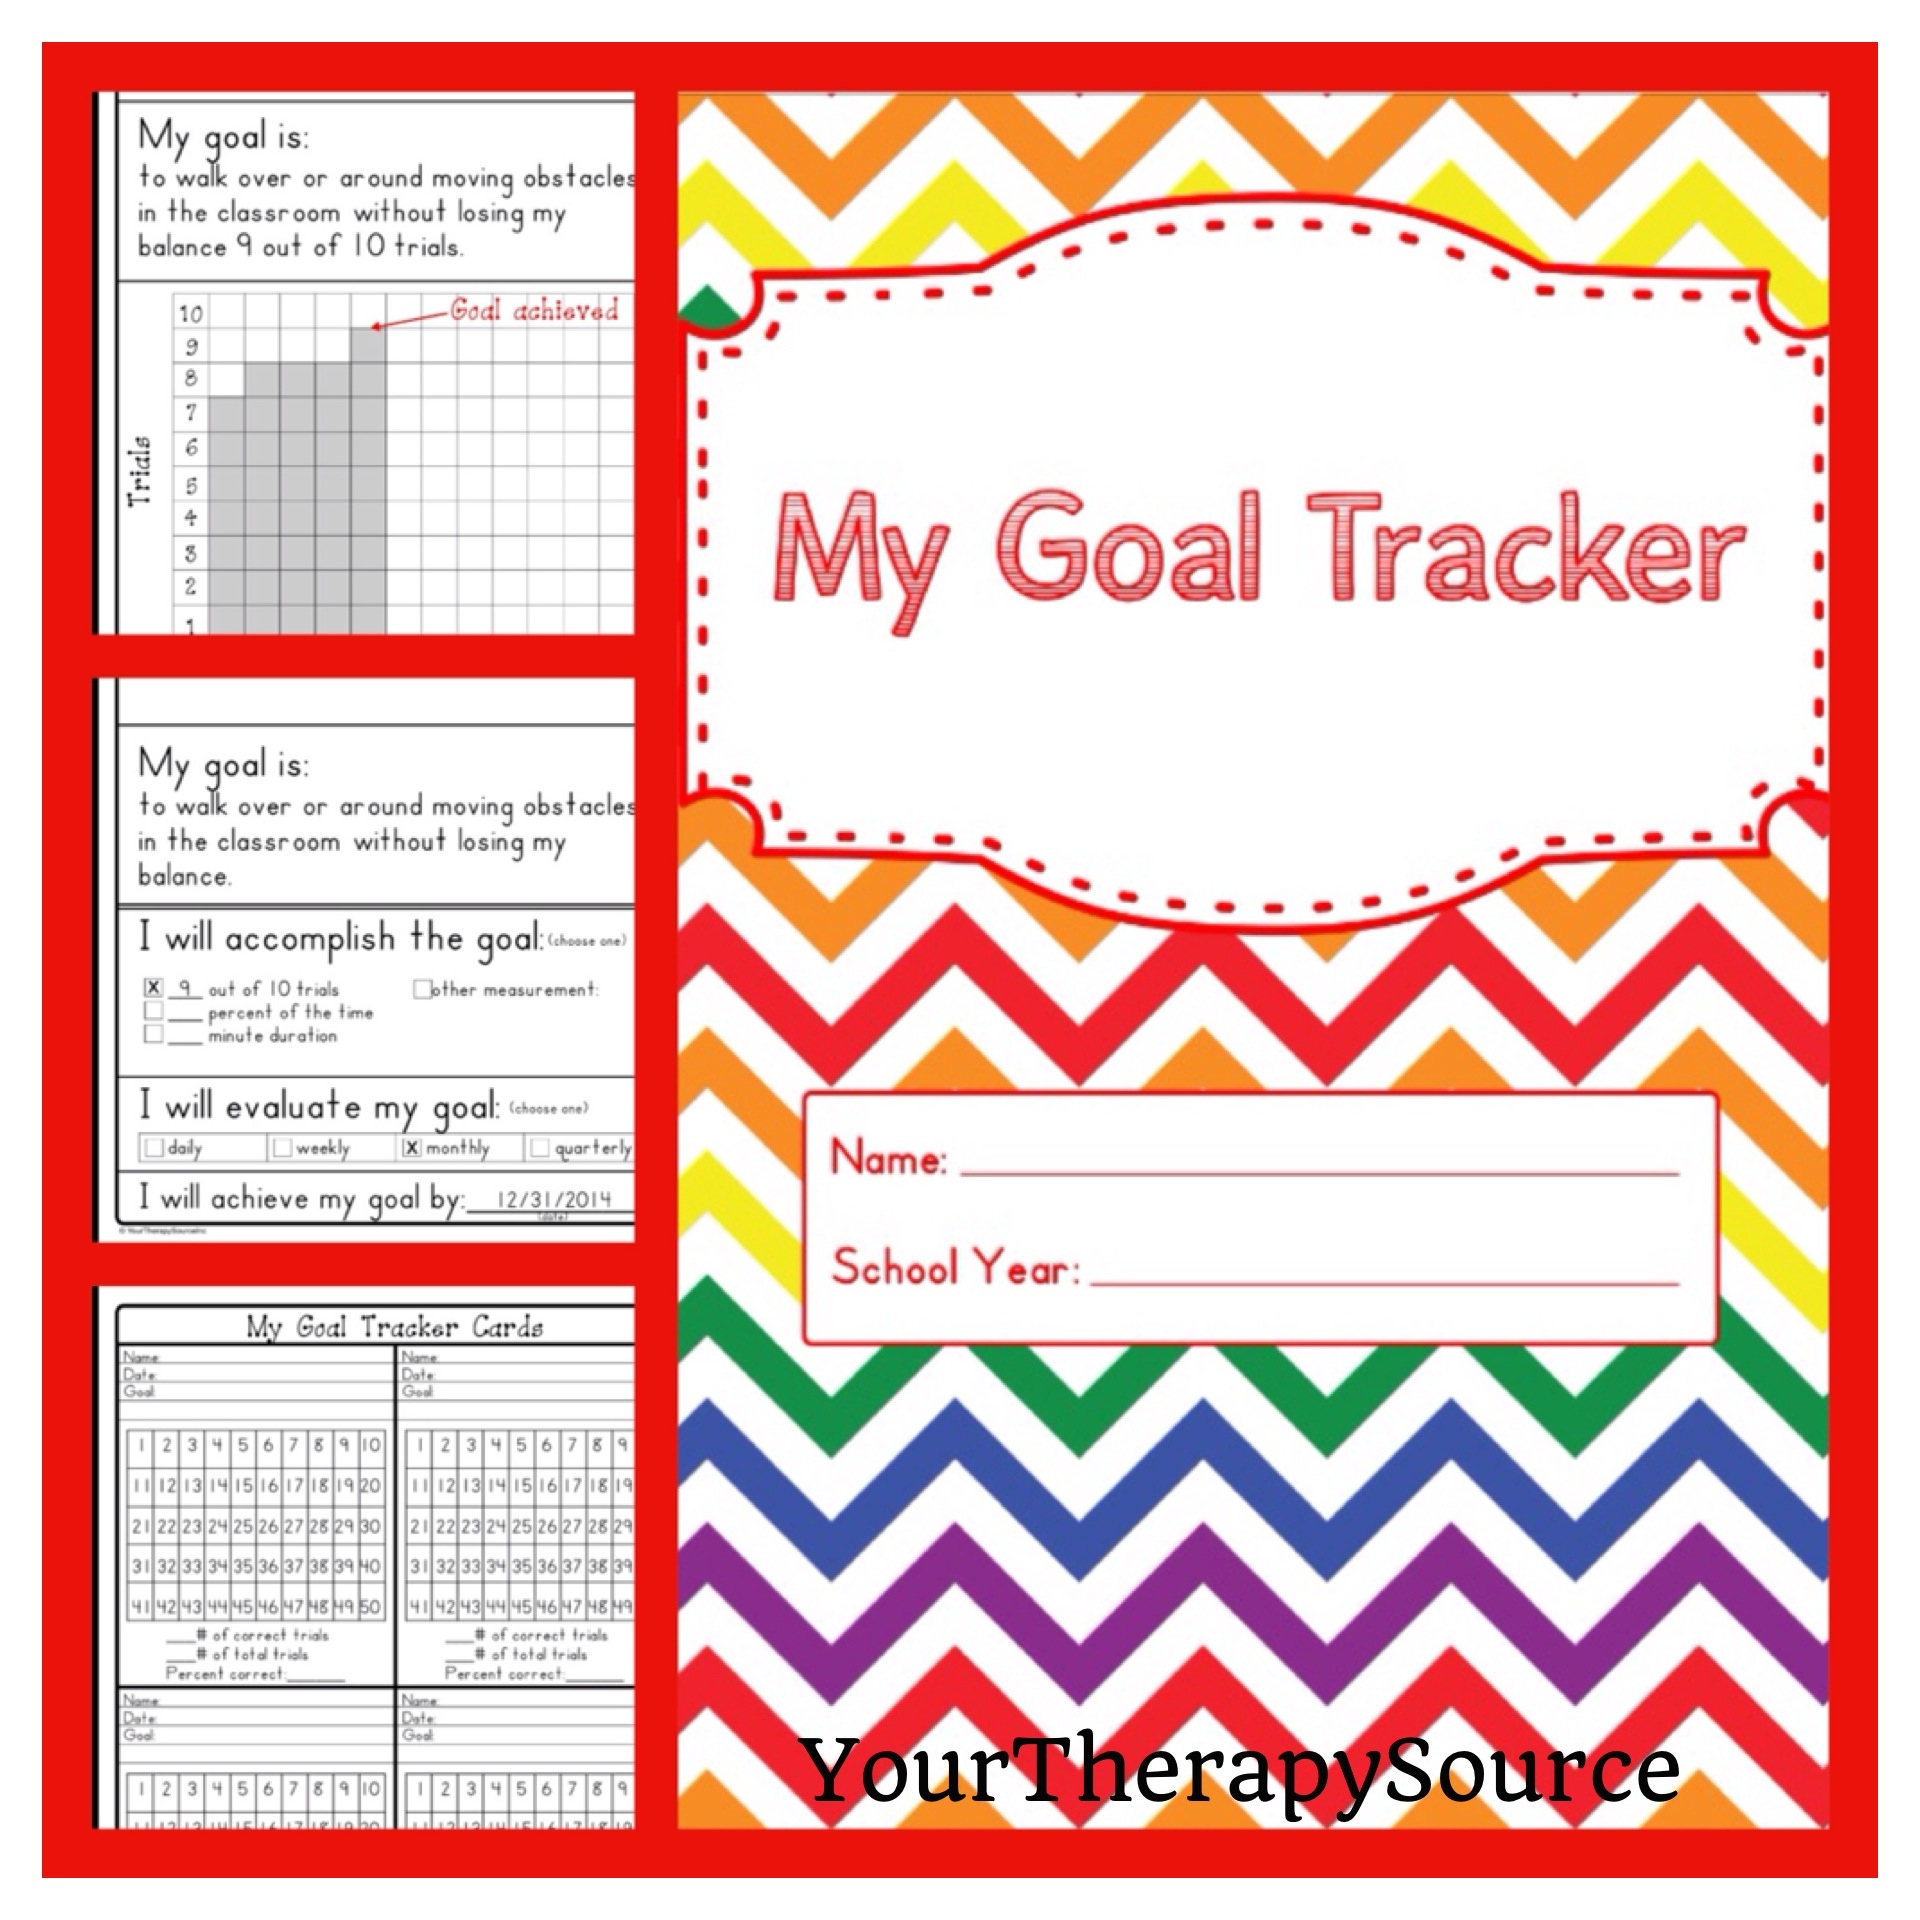 My Goal Tracker student data collection from https://www.yourtherapysource.com/goaltracker.html